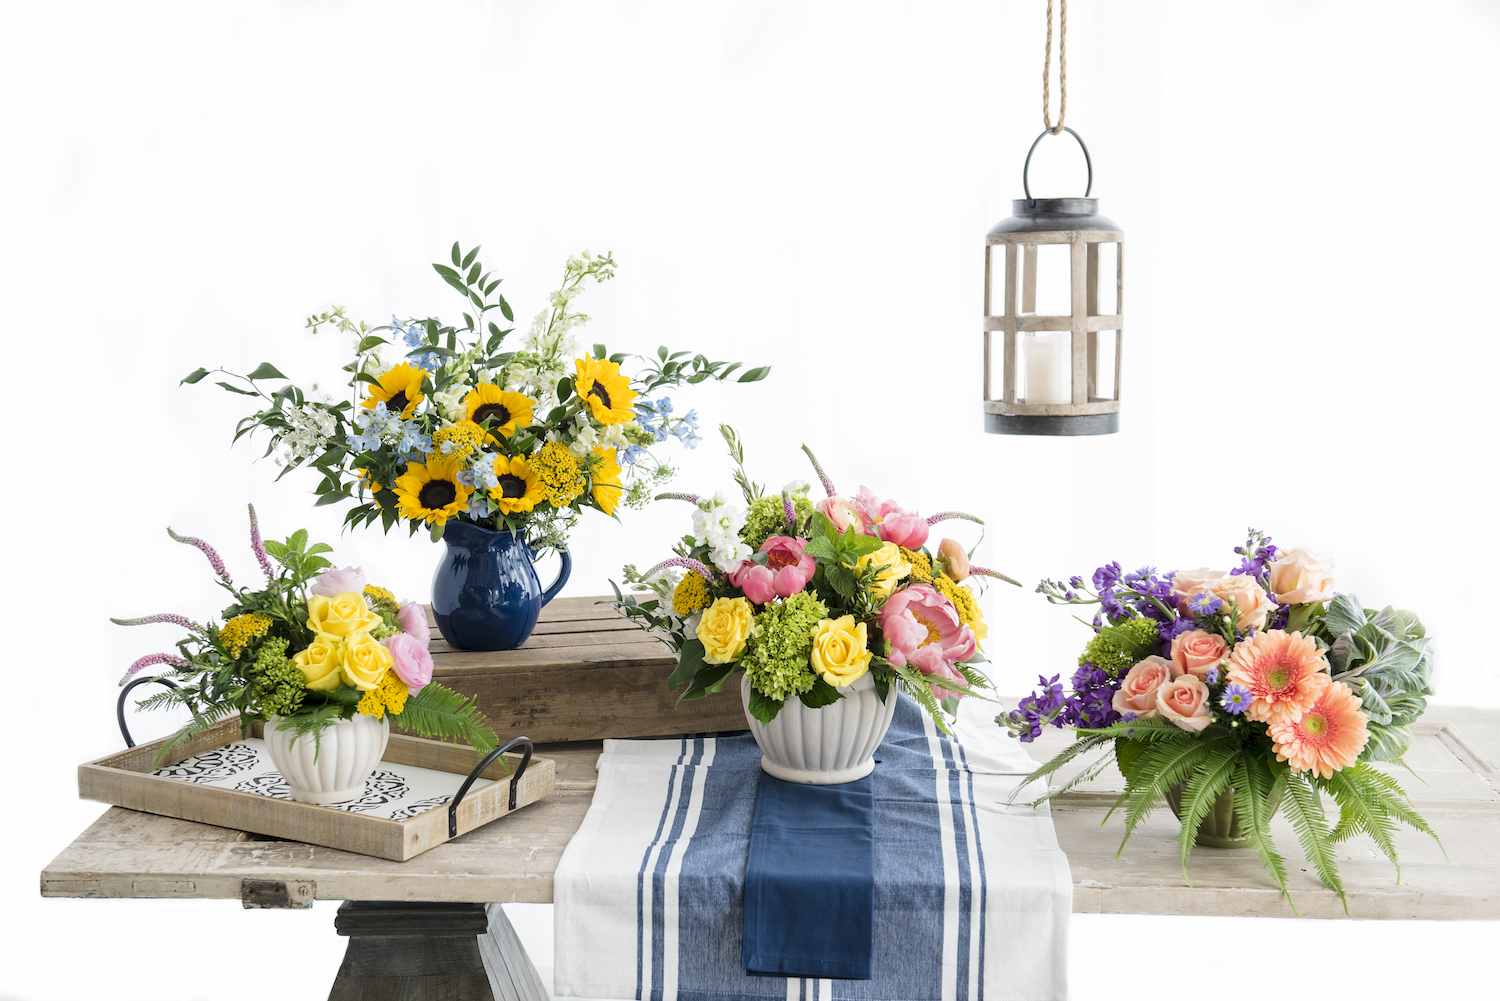 Designs from our Flower Market and Artisan Collections for J. Morris Flowers.